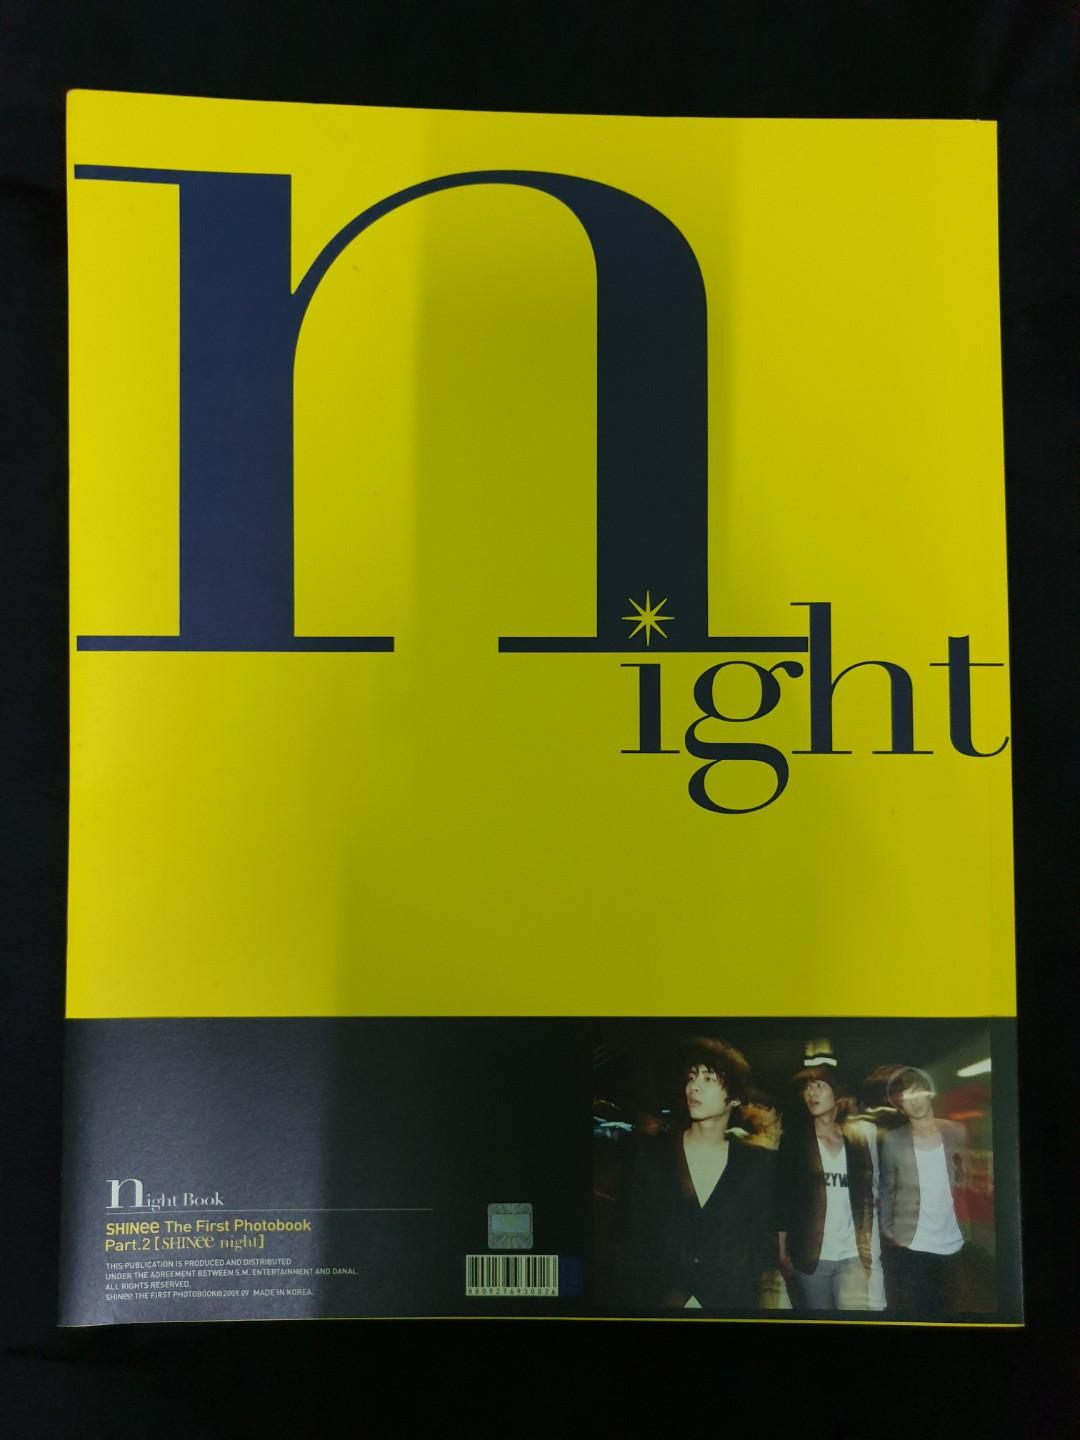 SHINee the 1st Photobook Part. 2 [SHINee night] + DVD